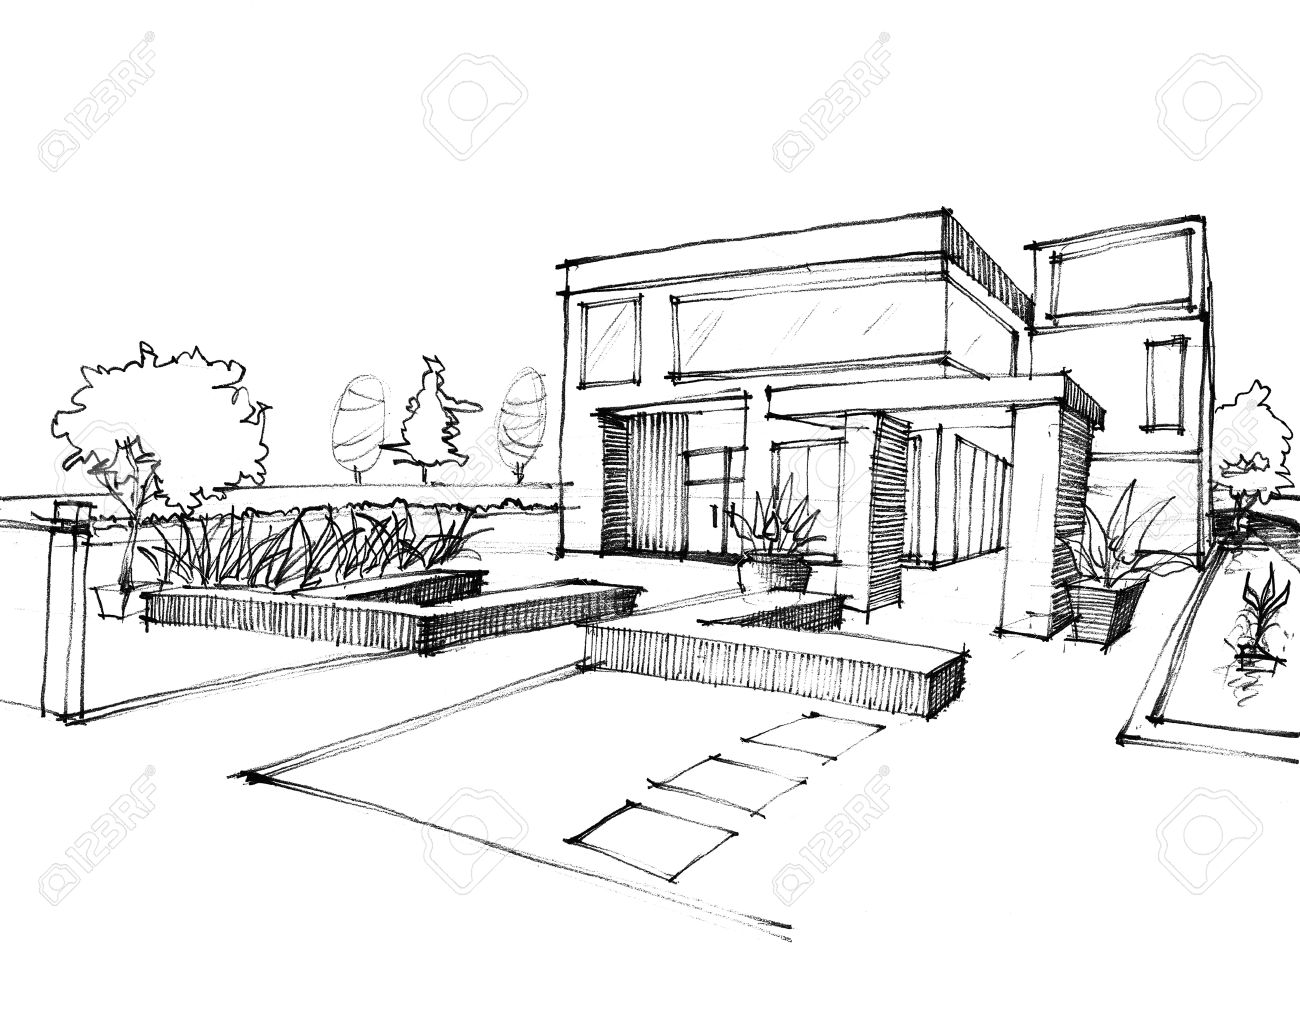 Home Sketch Design On White Paper Stock Photo, Picture nd oyalty ... - ^